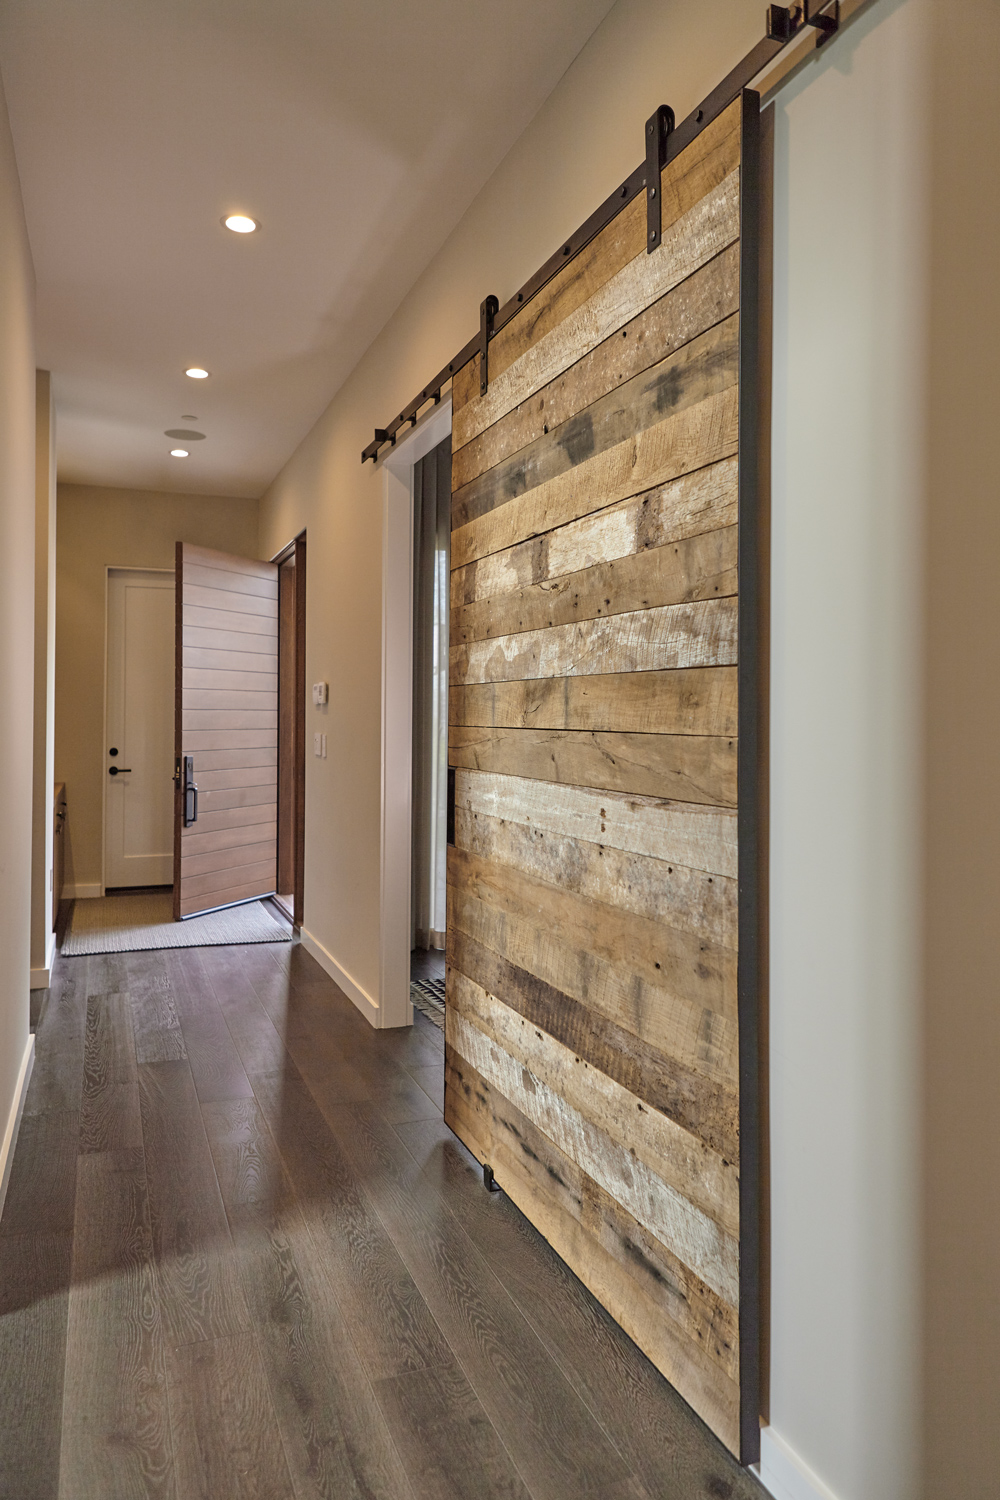 Ilona-House-02-Hallway-Barn-Door-1000x1500.jpg